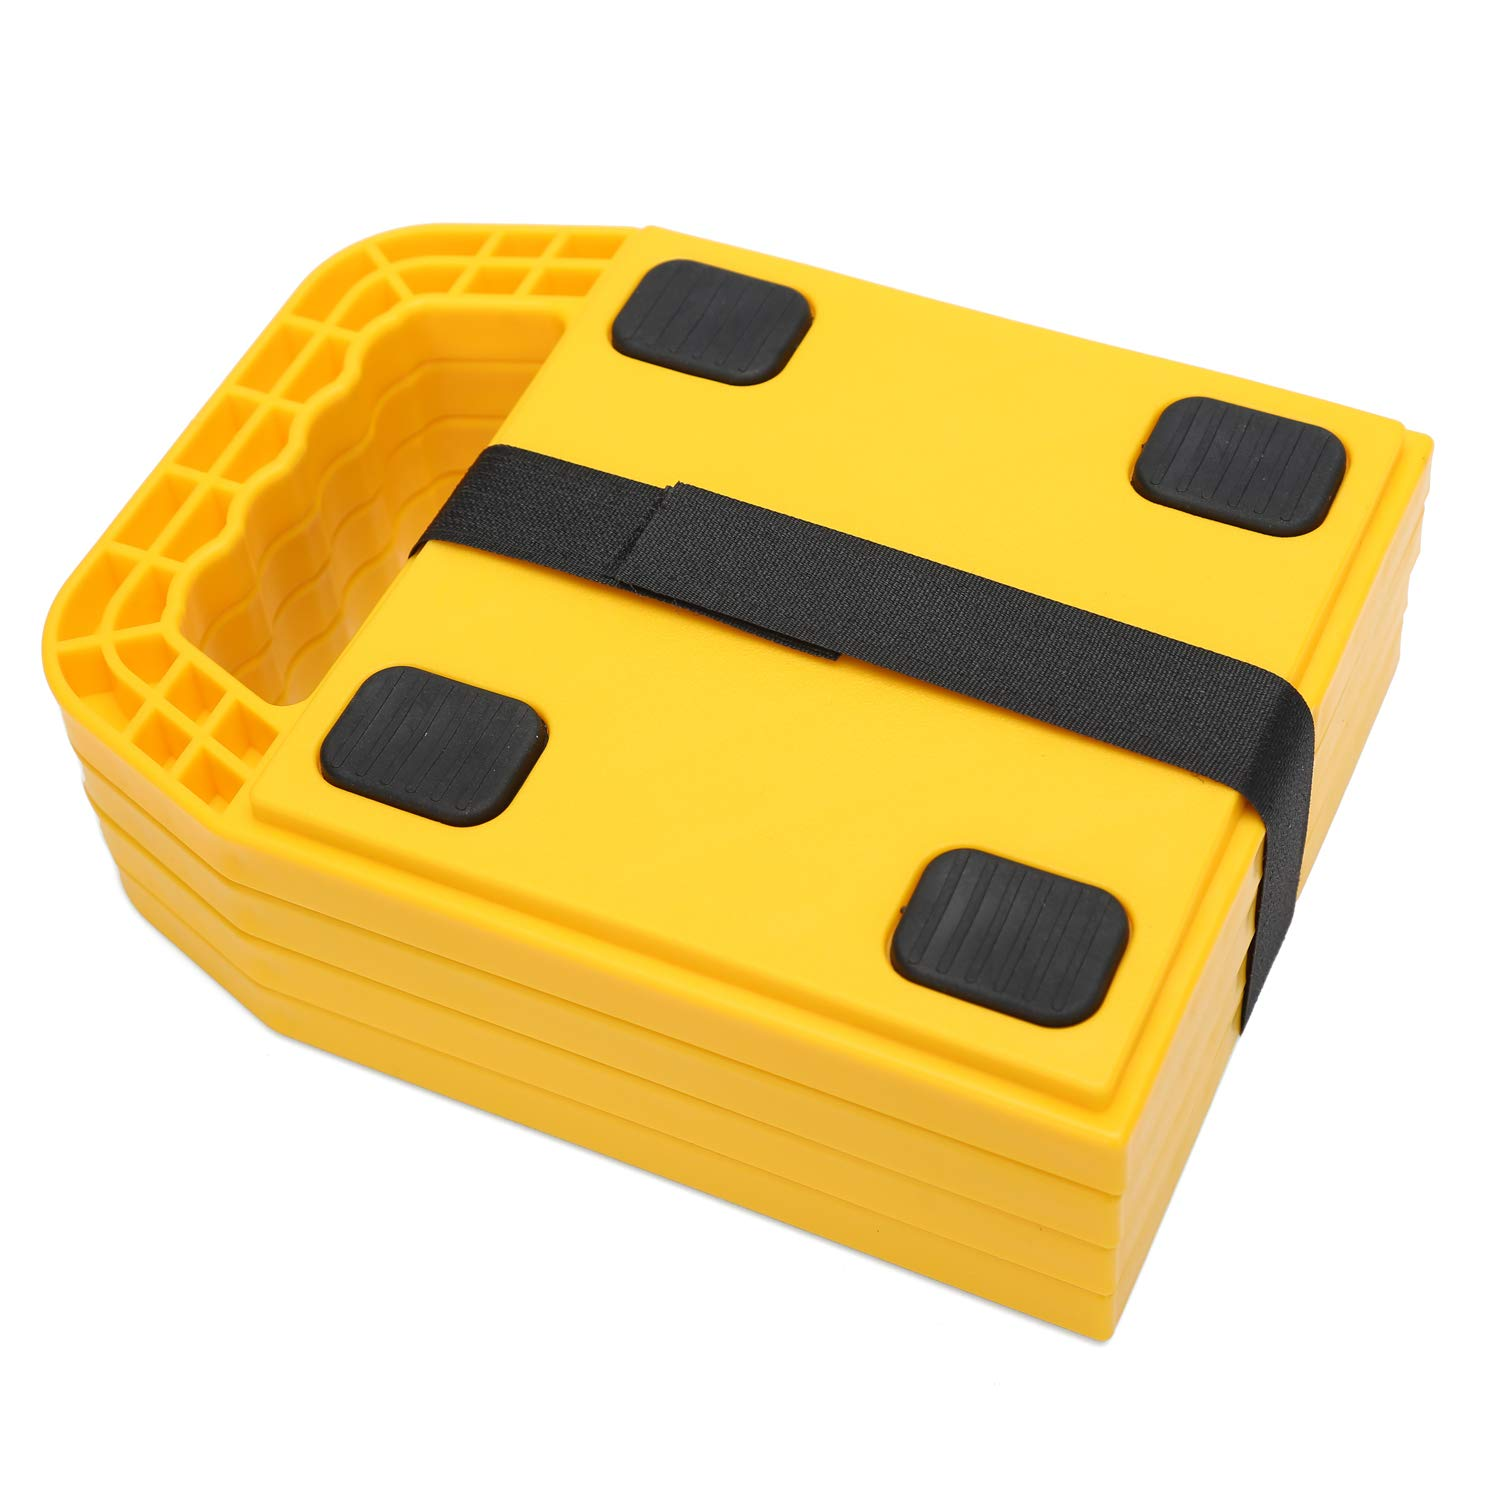 Homeon Wheels Stabilizing Jack Pads for RV, Camper Leveling Blocks Help Prevent Jacks from Sinking,8.7''X 6.3'' (Pack of 4) by Homeon Wheels